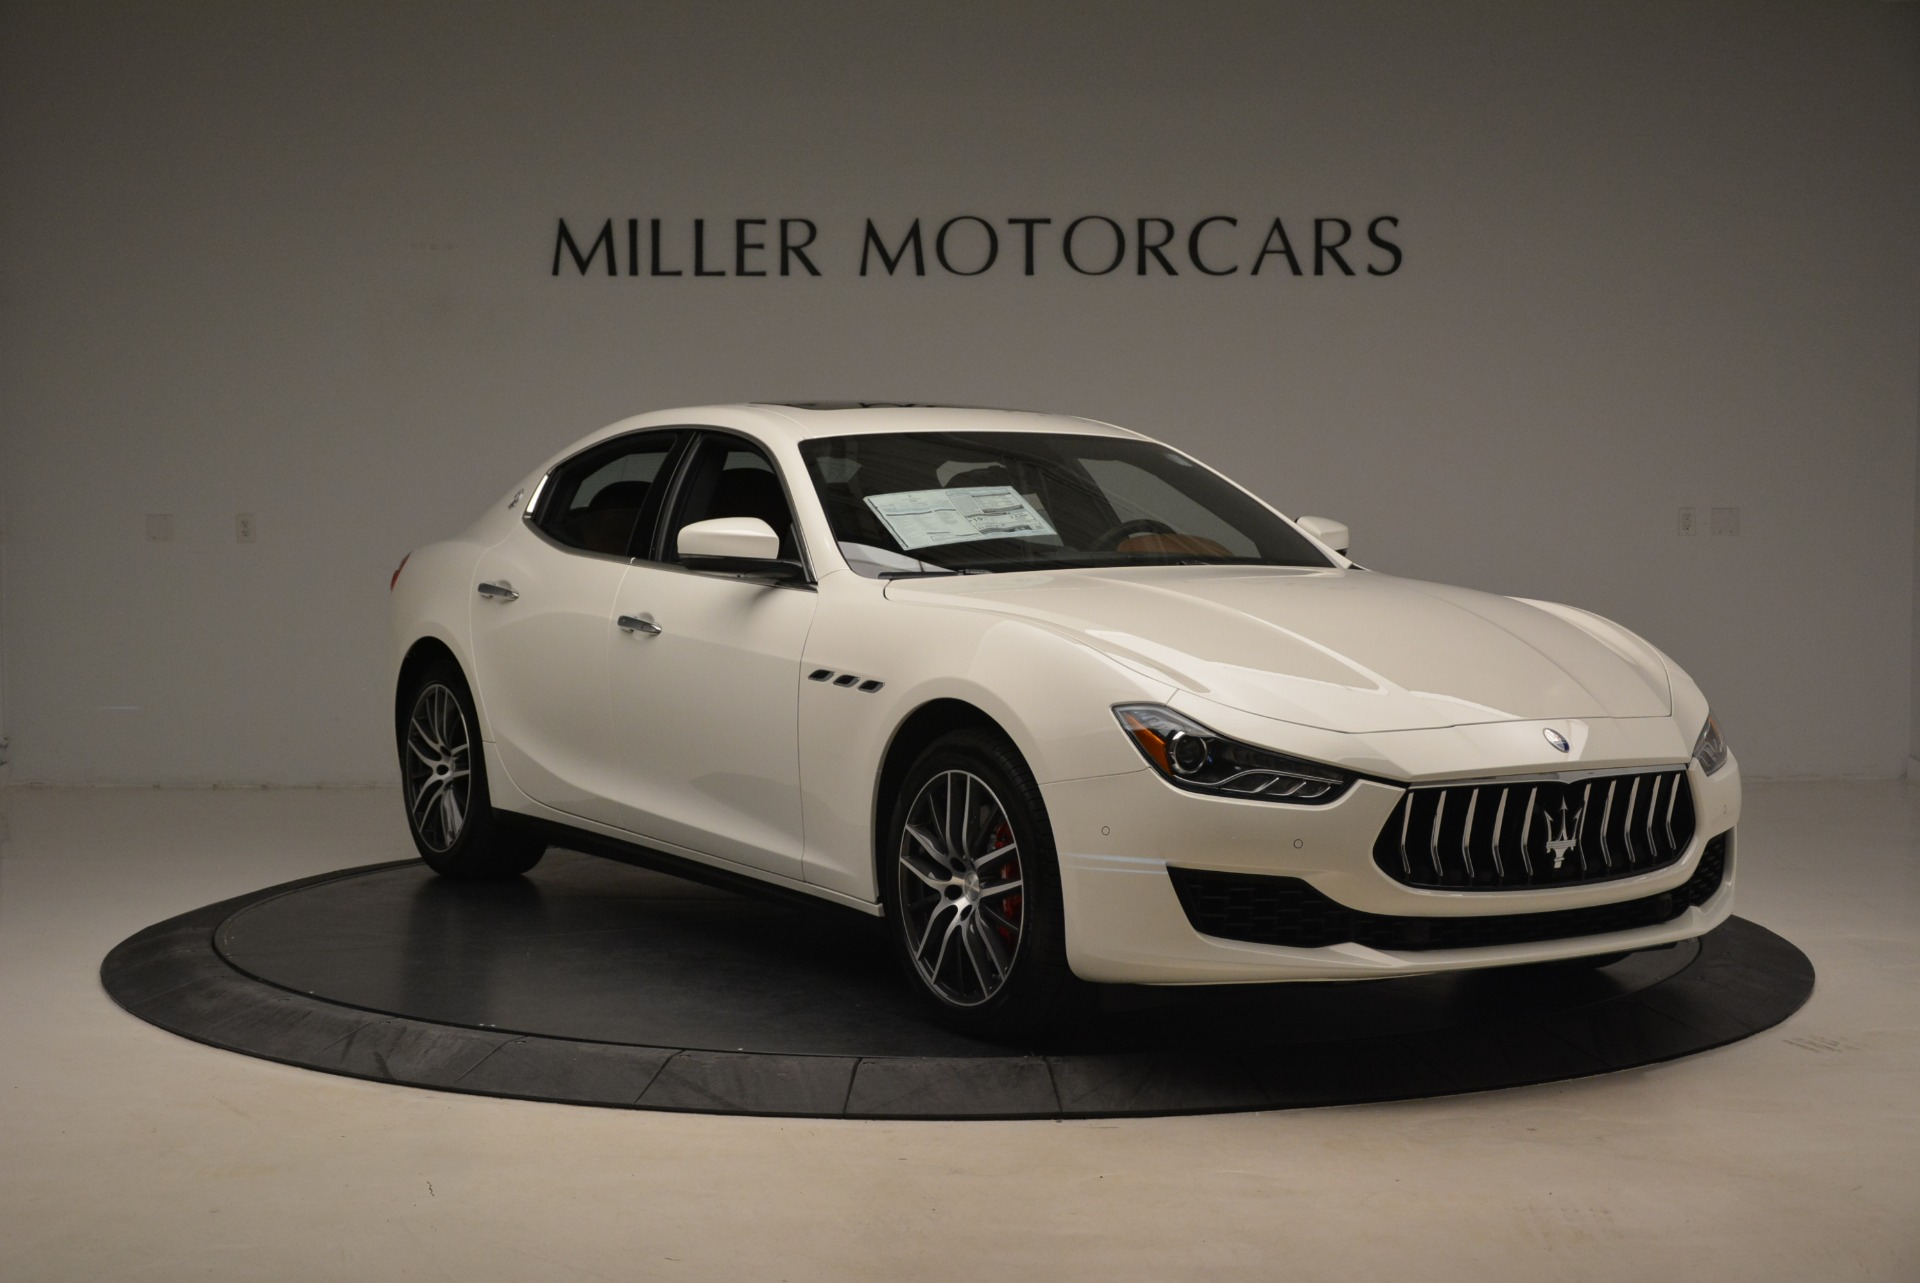 New 2018 Maserati Ghibli S Q4 For Sale In Greenwich, CT. Alfa Romeo of Greenwich, M2058 2074_p10